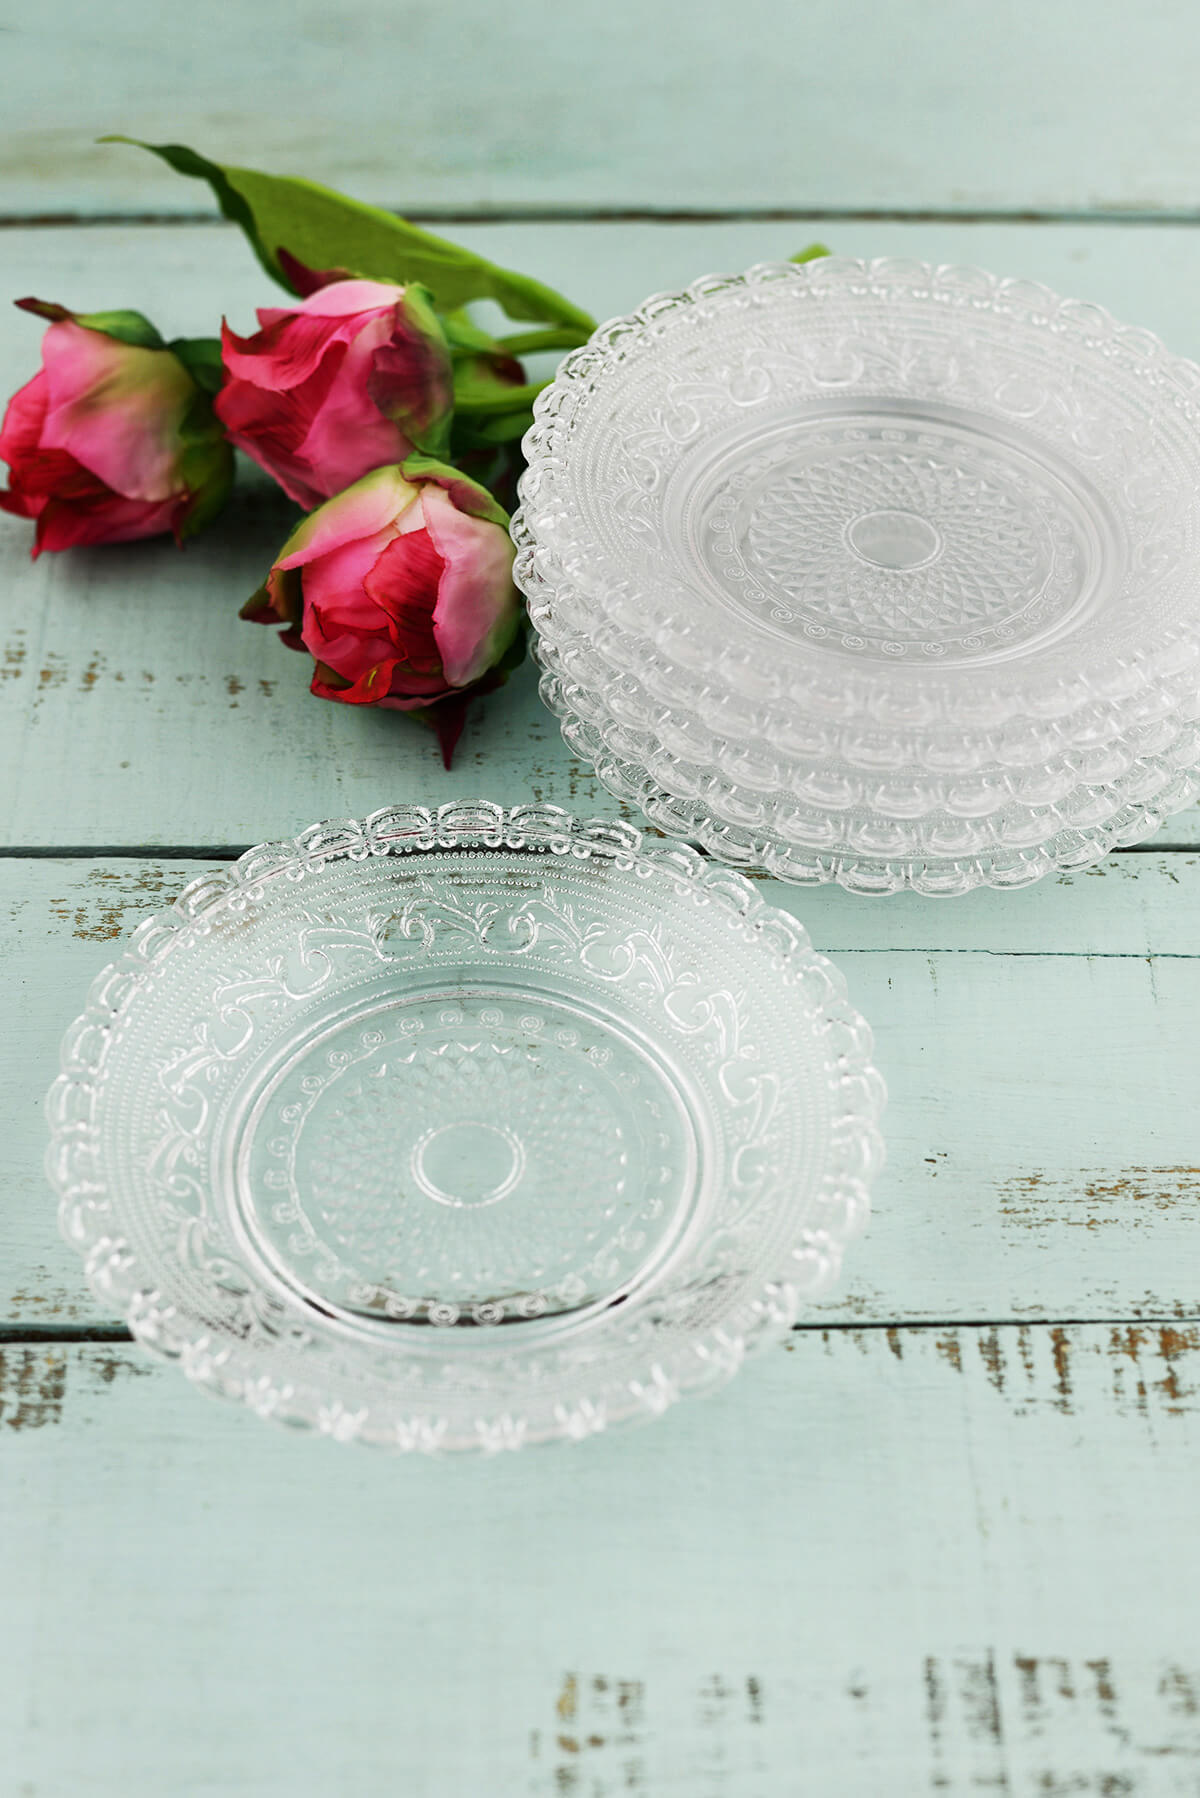 Clear glass plates for crafts - Clear Glass Plates For Crafts Vintage Lace Glass Plates 6 Plates 5 Download